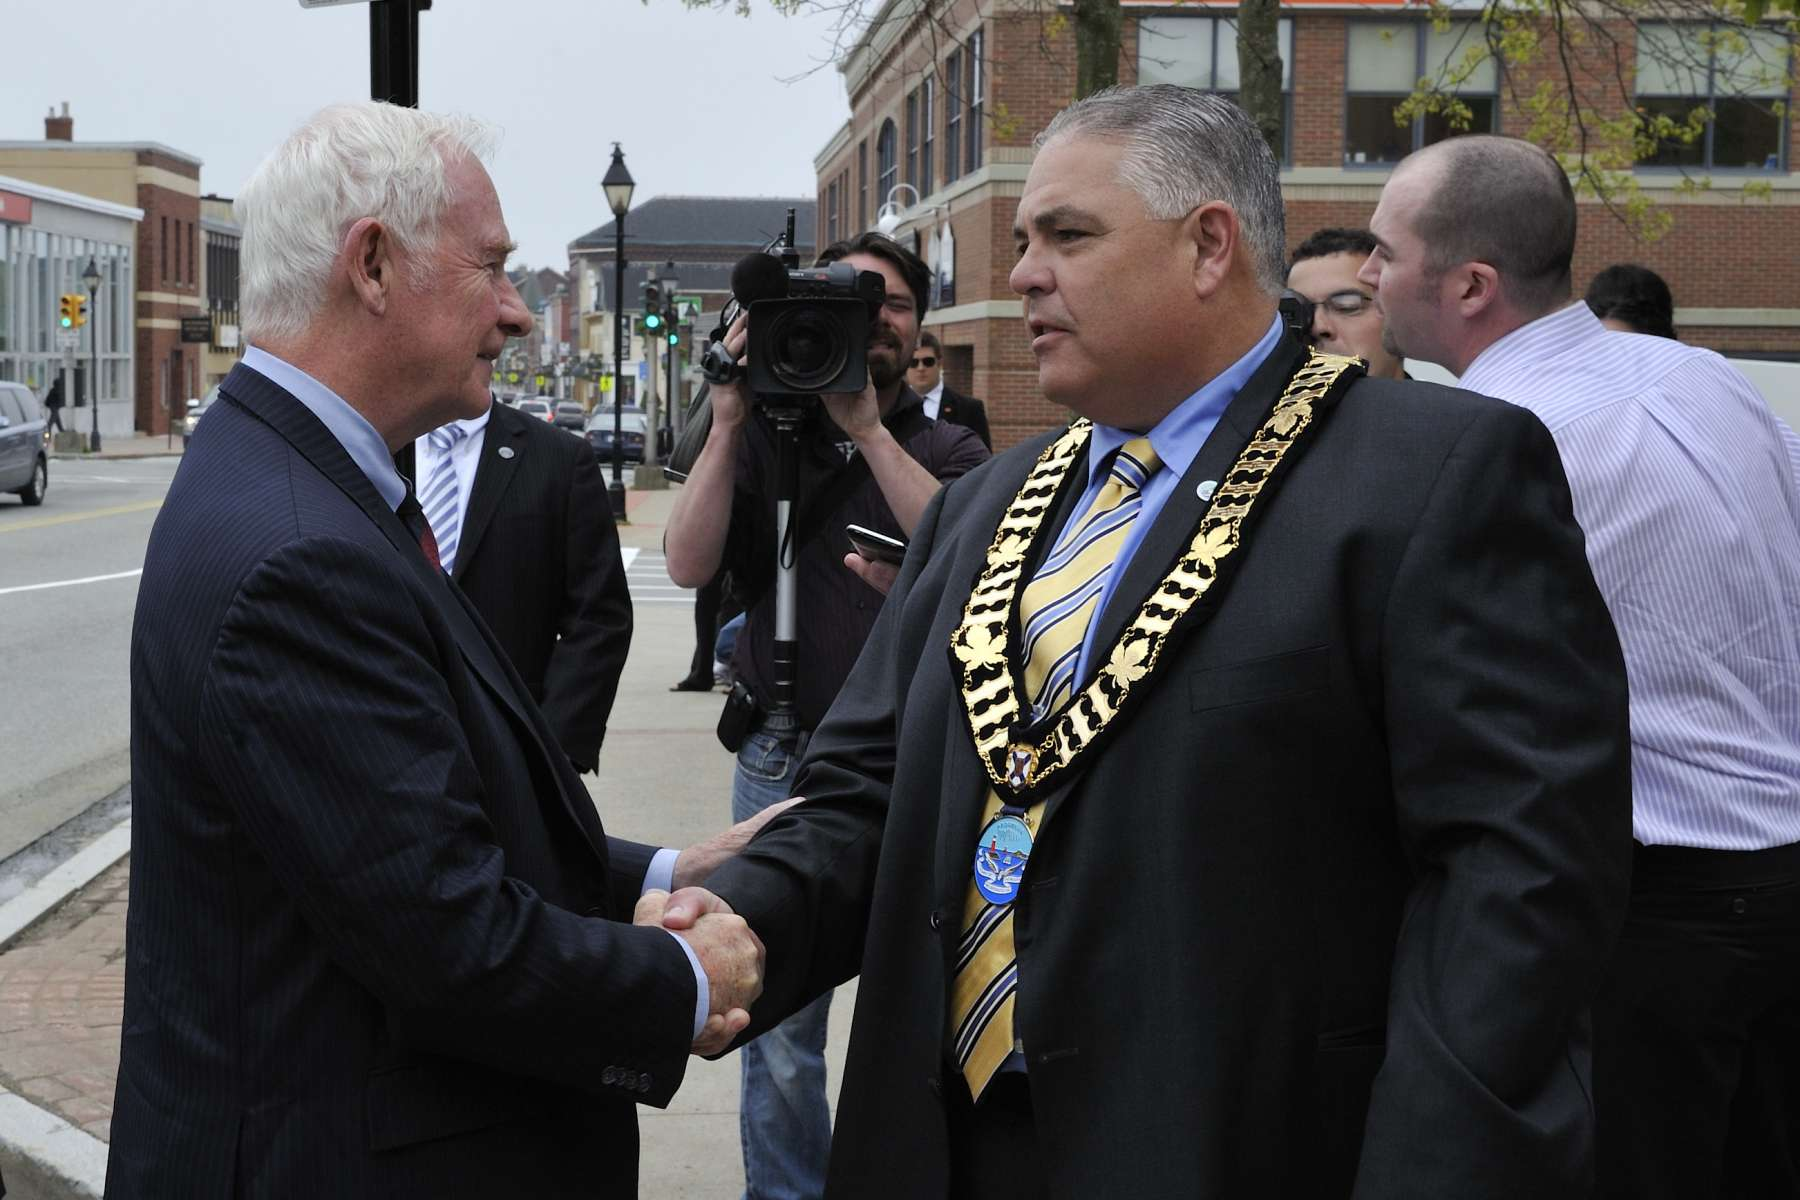 In the afternoon, His Excellency went to Yarmouth to meet with city mayor His Worship Phil Mooney.